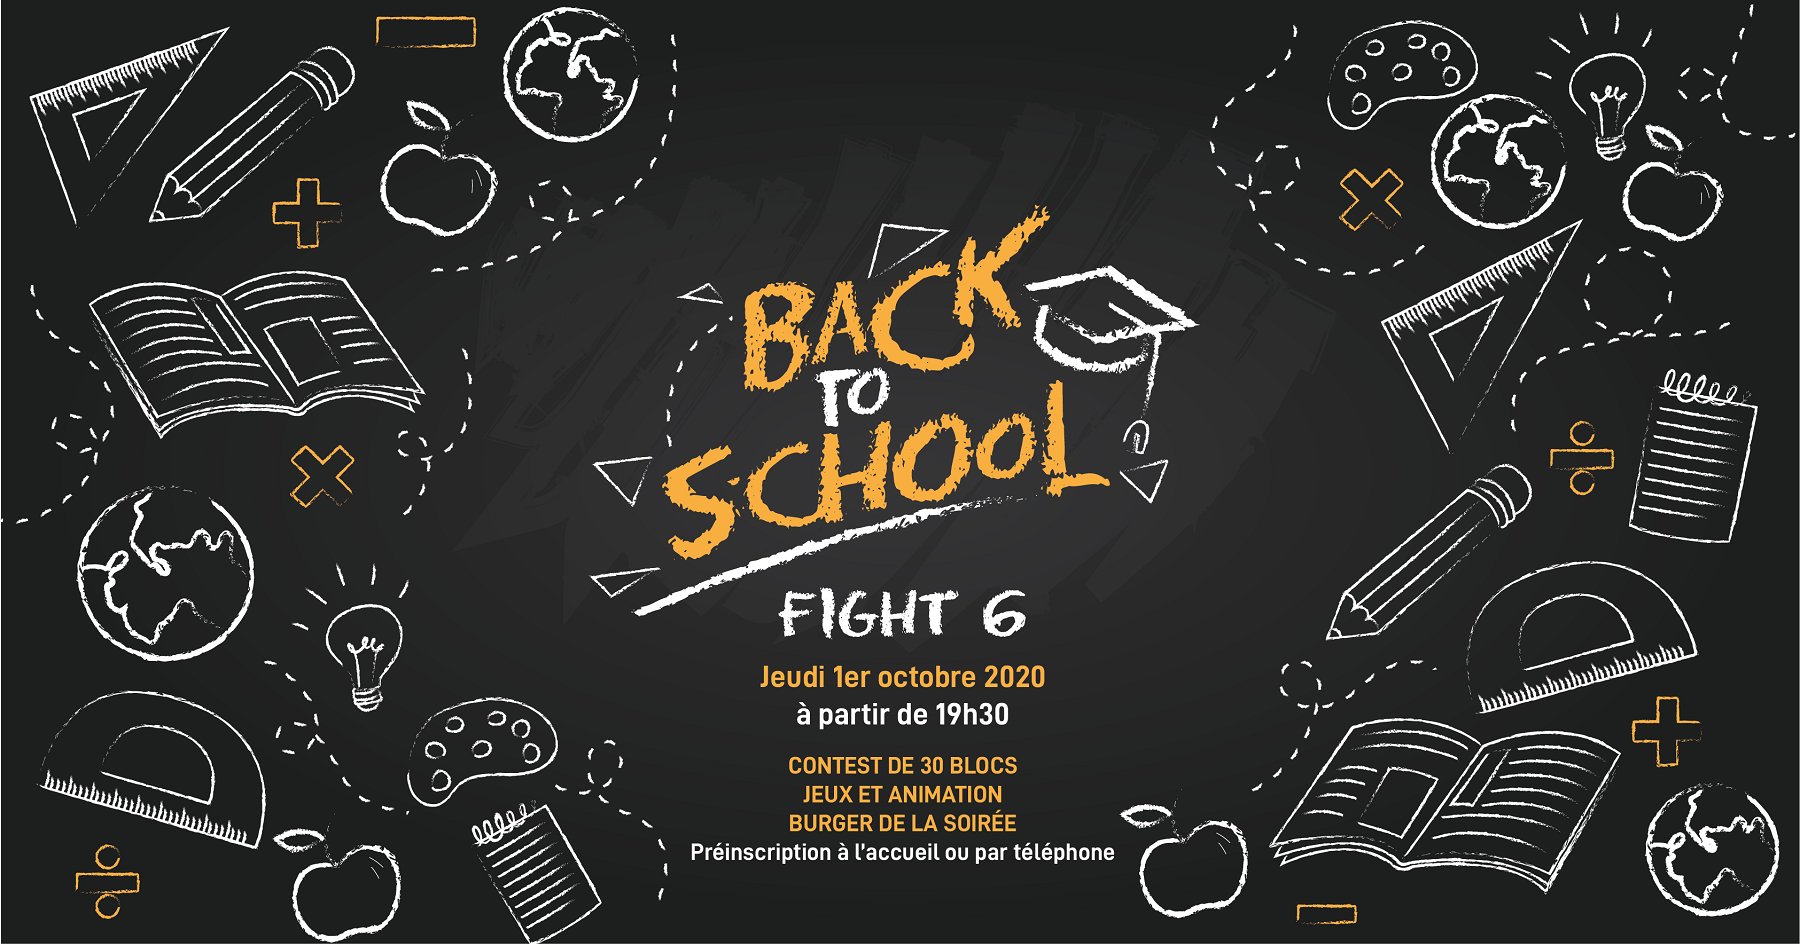 FIGHT #6 Back to school